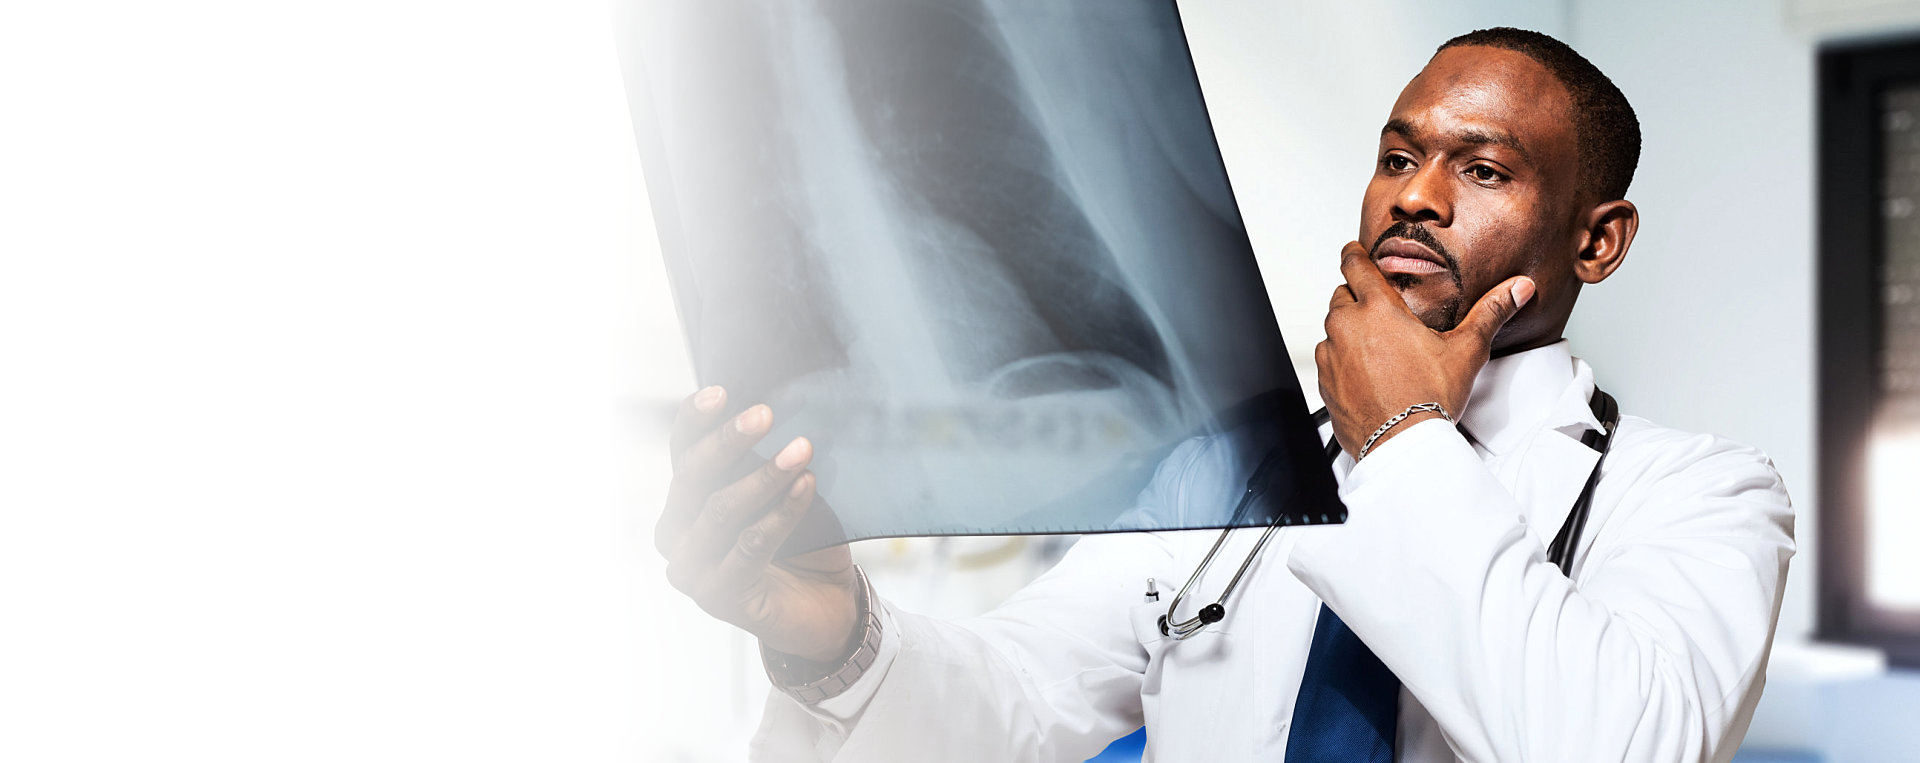 doctor looking on x-ray result